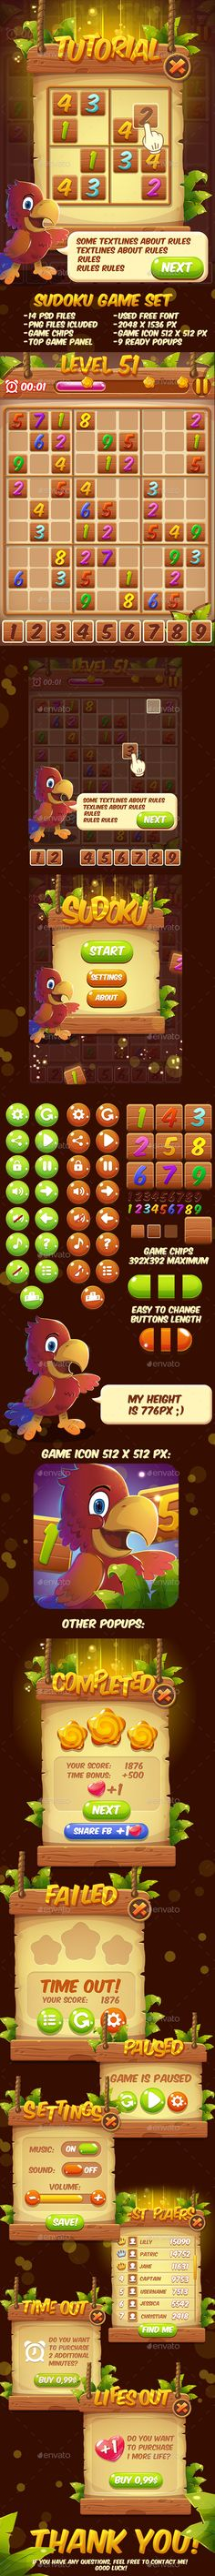 Cartoon Sudoku Puzzle Full Game Set with GUI - Game Kits Game Assets